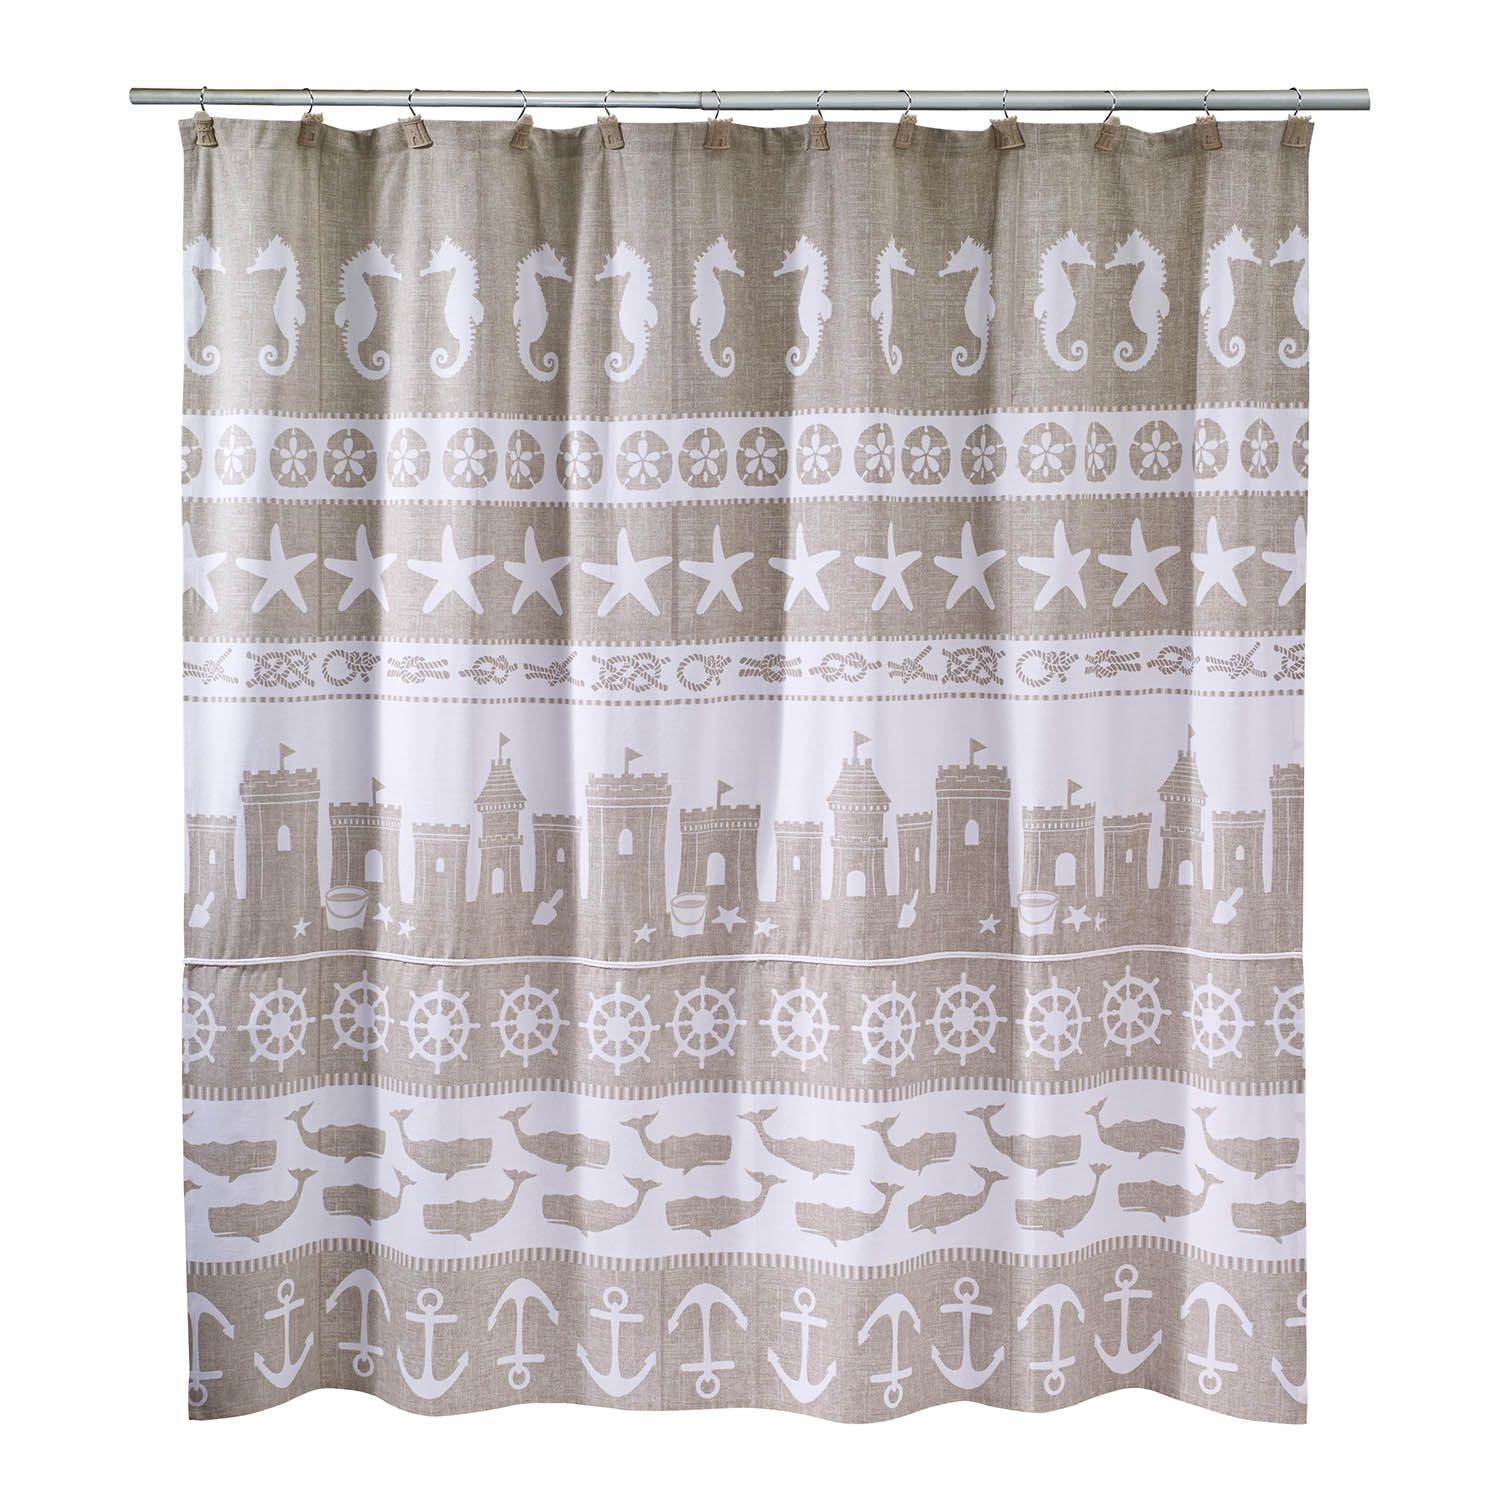 Sea And Sand Shower Curtain Products Jpg 1500x1500 Anthropologies Tender Falls